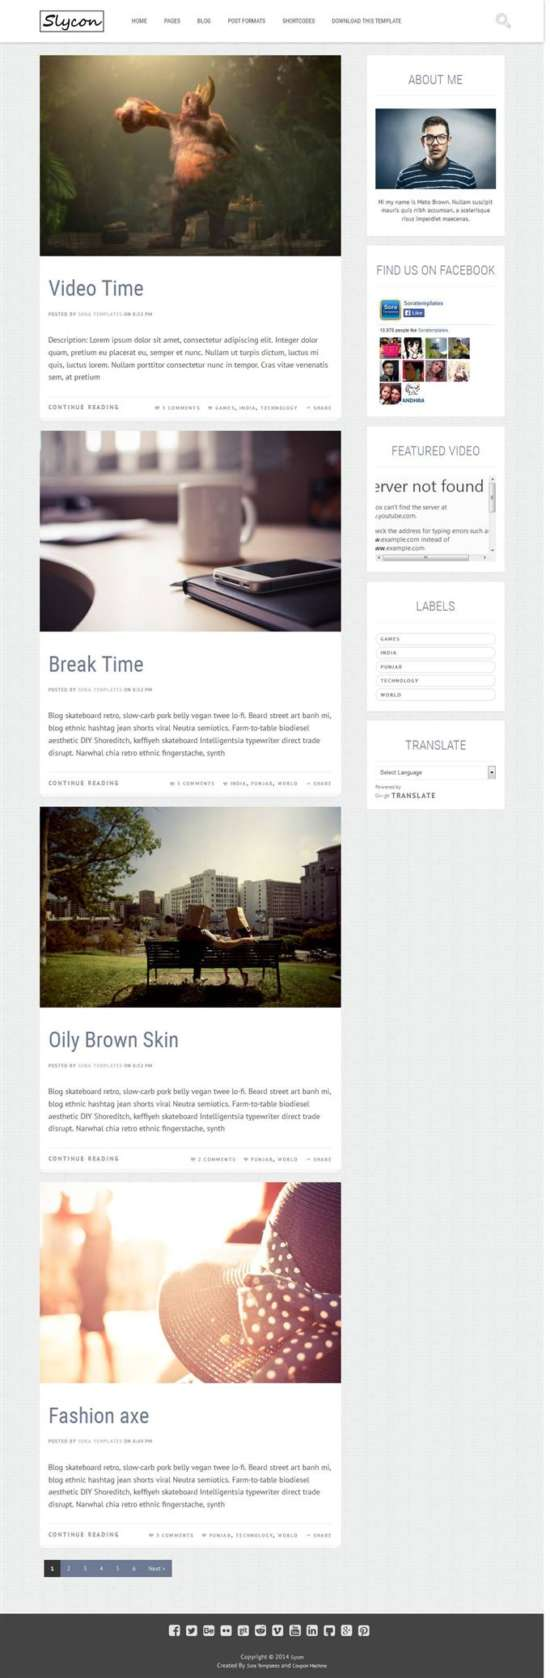 sycon_personal_blog_blogger_template_screenshot